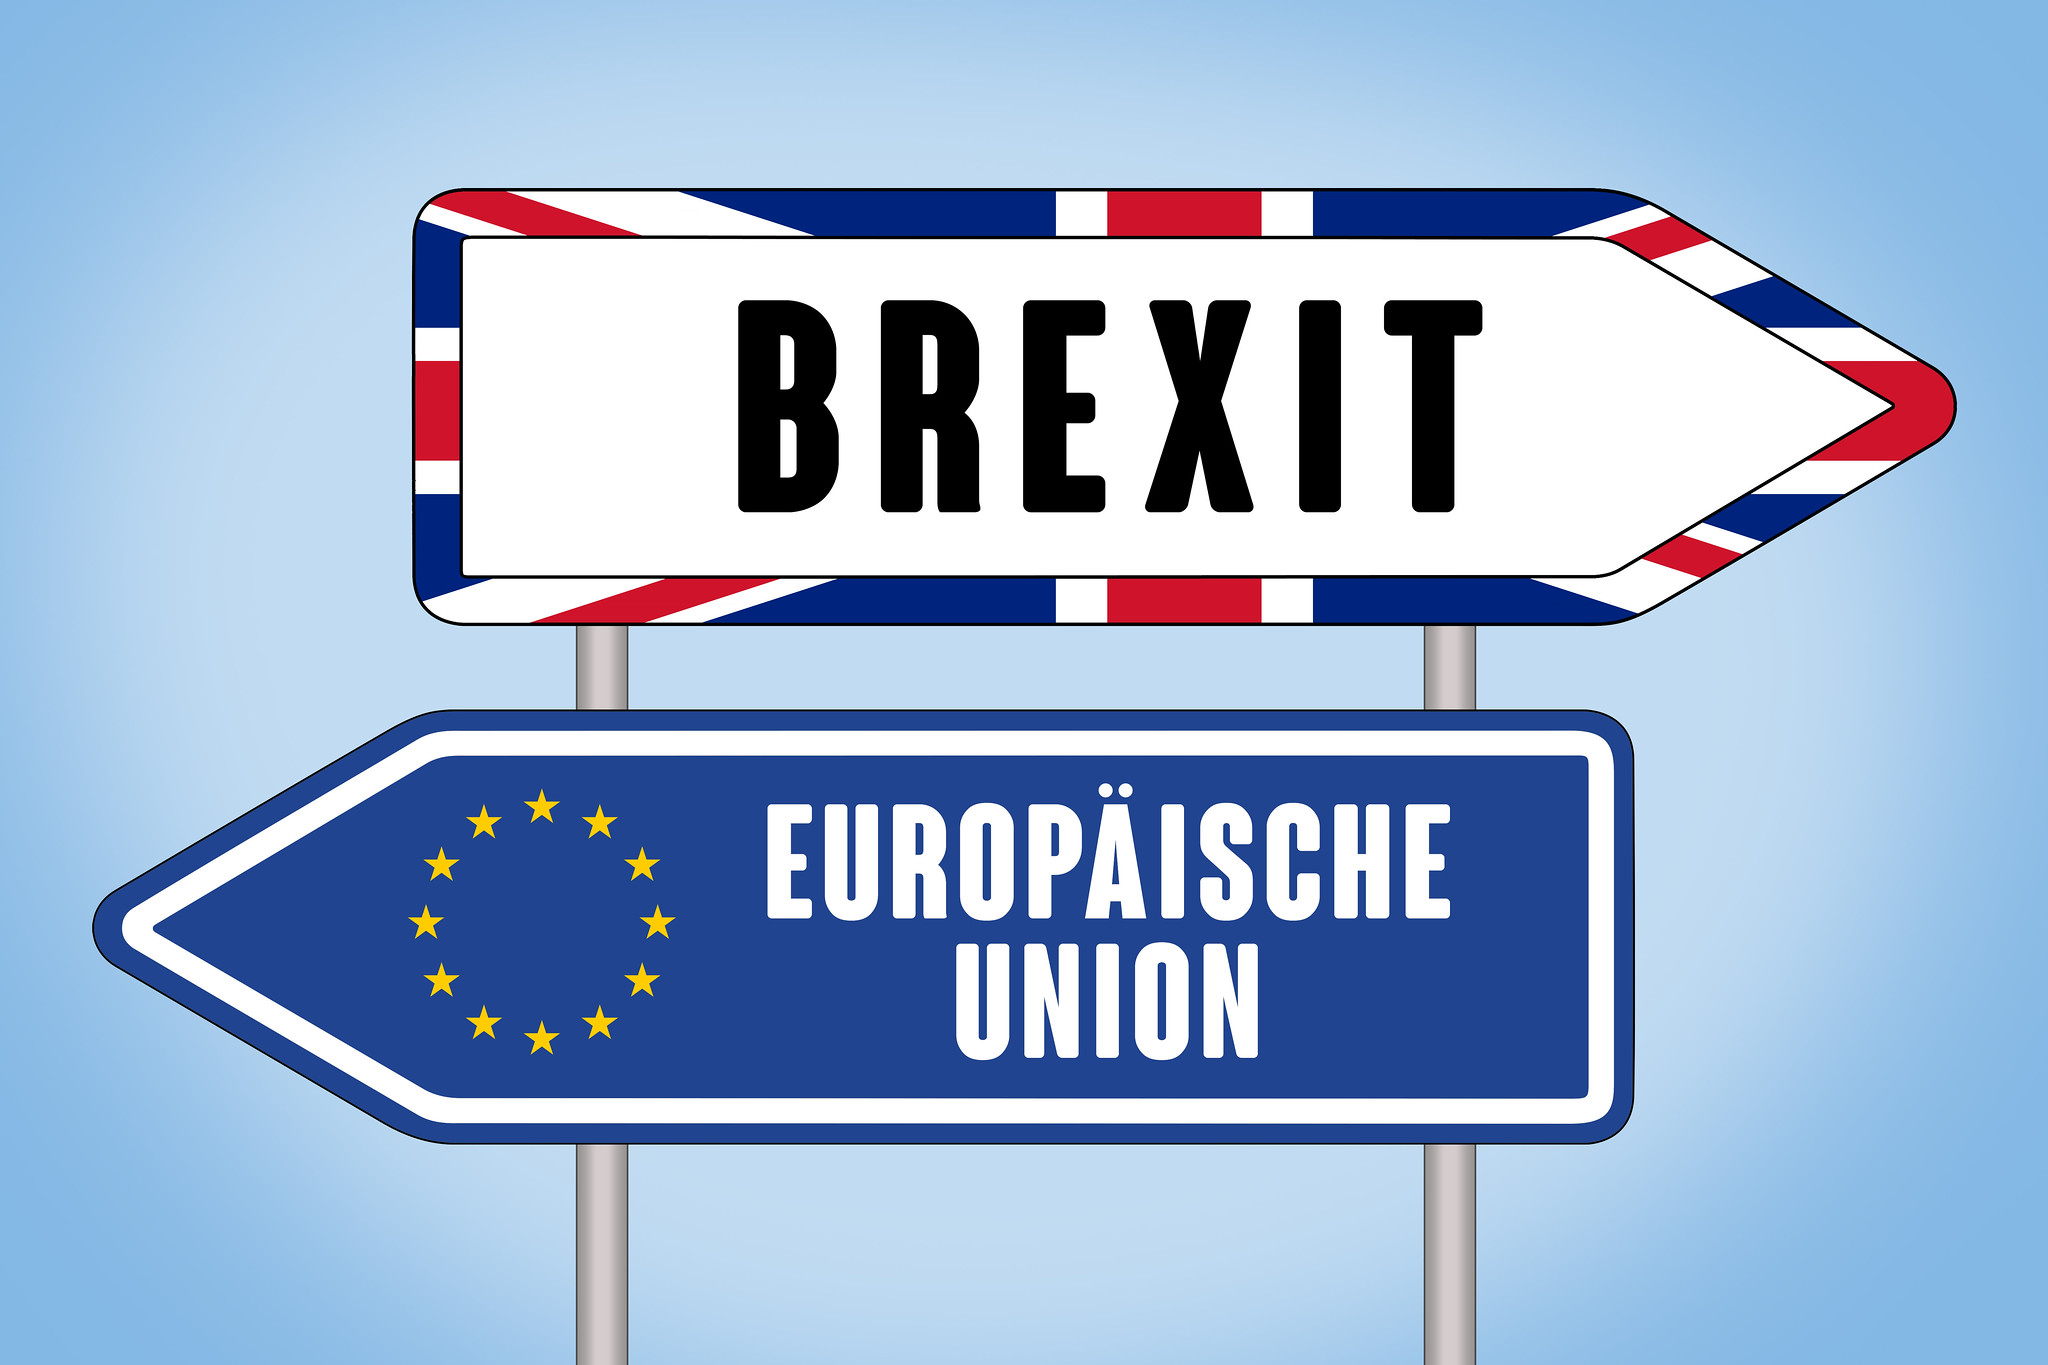 two road signs pointing in opposite directions. One says Brexit, the other Europäische Union